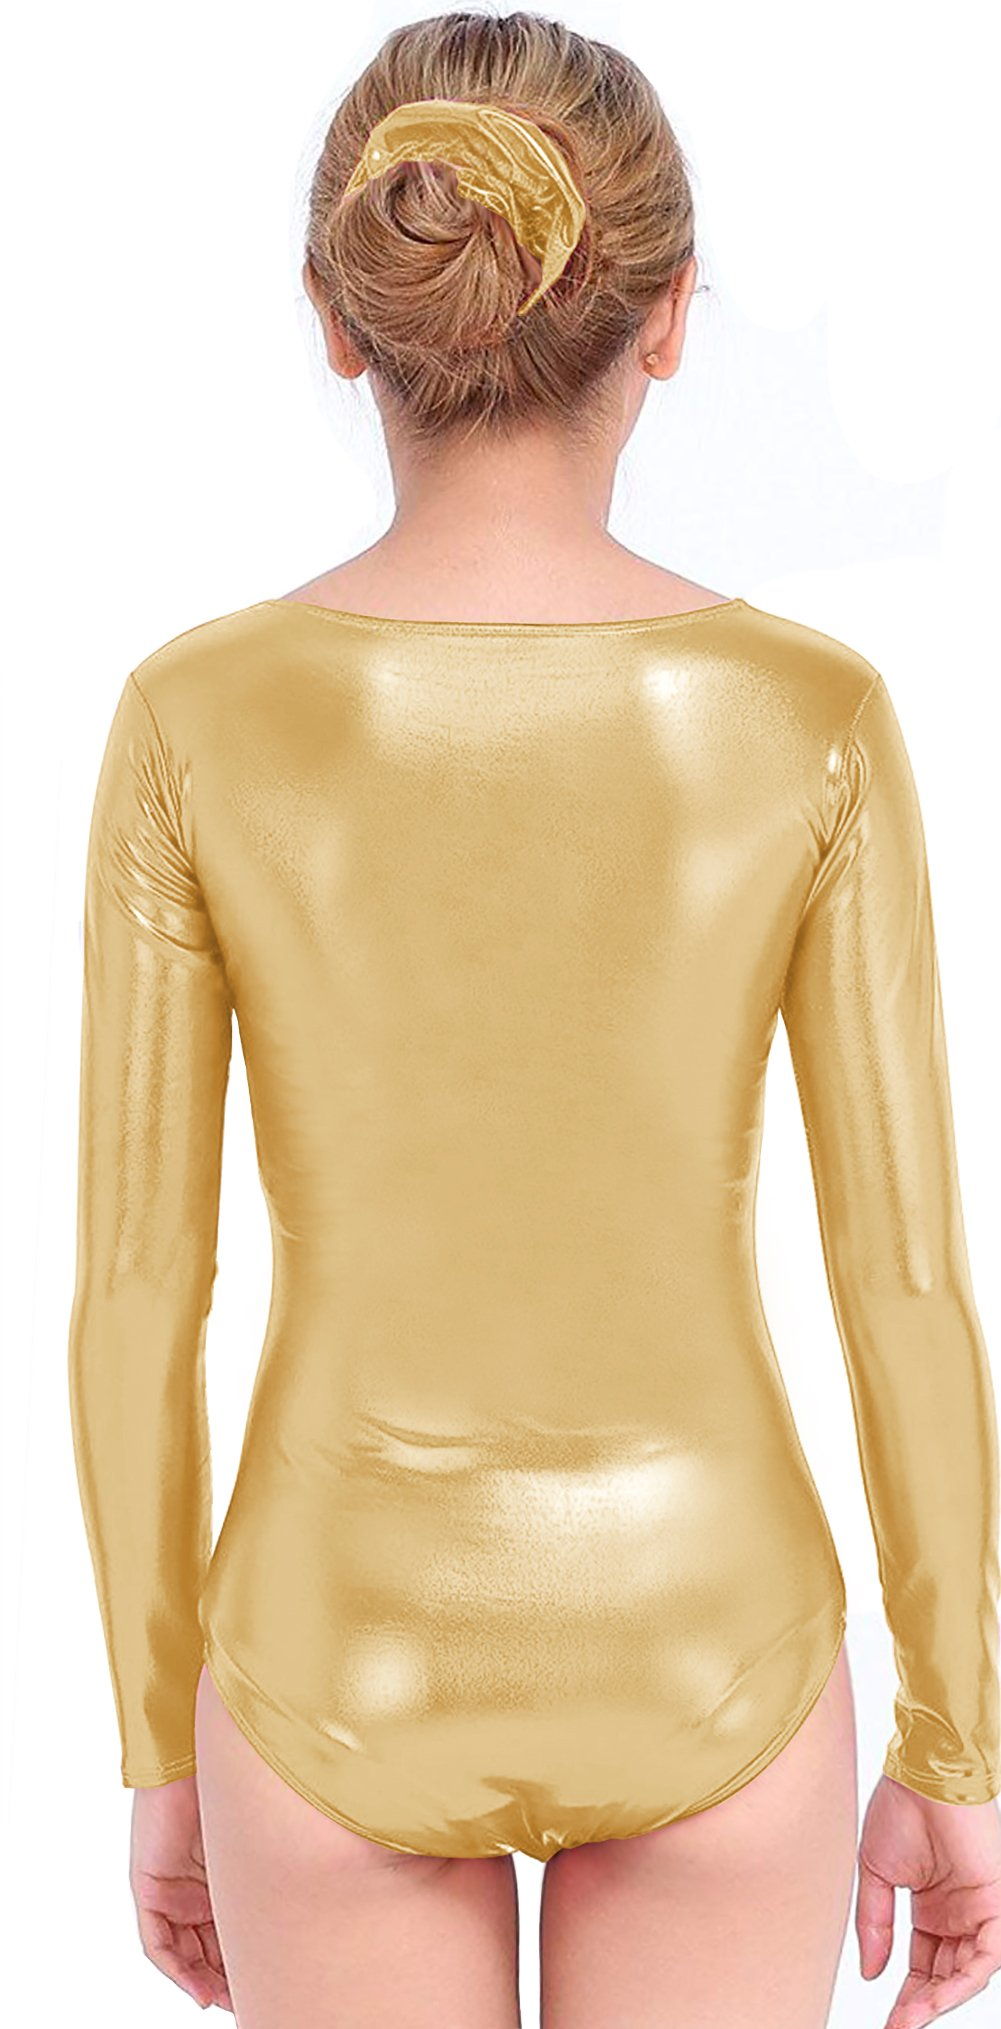 16066b752a5d4 Speerise Girls Kids Long Sleeve Shiny Metallic Dance Gymnastics Leotard,  Gold, 12-14